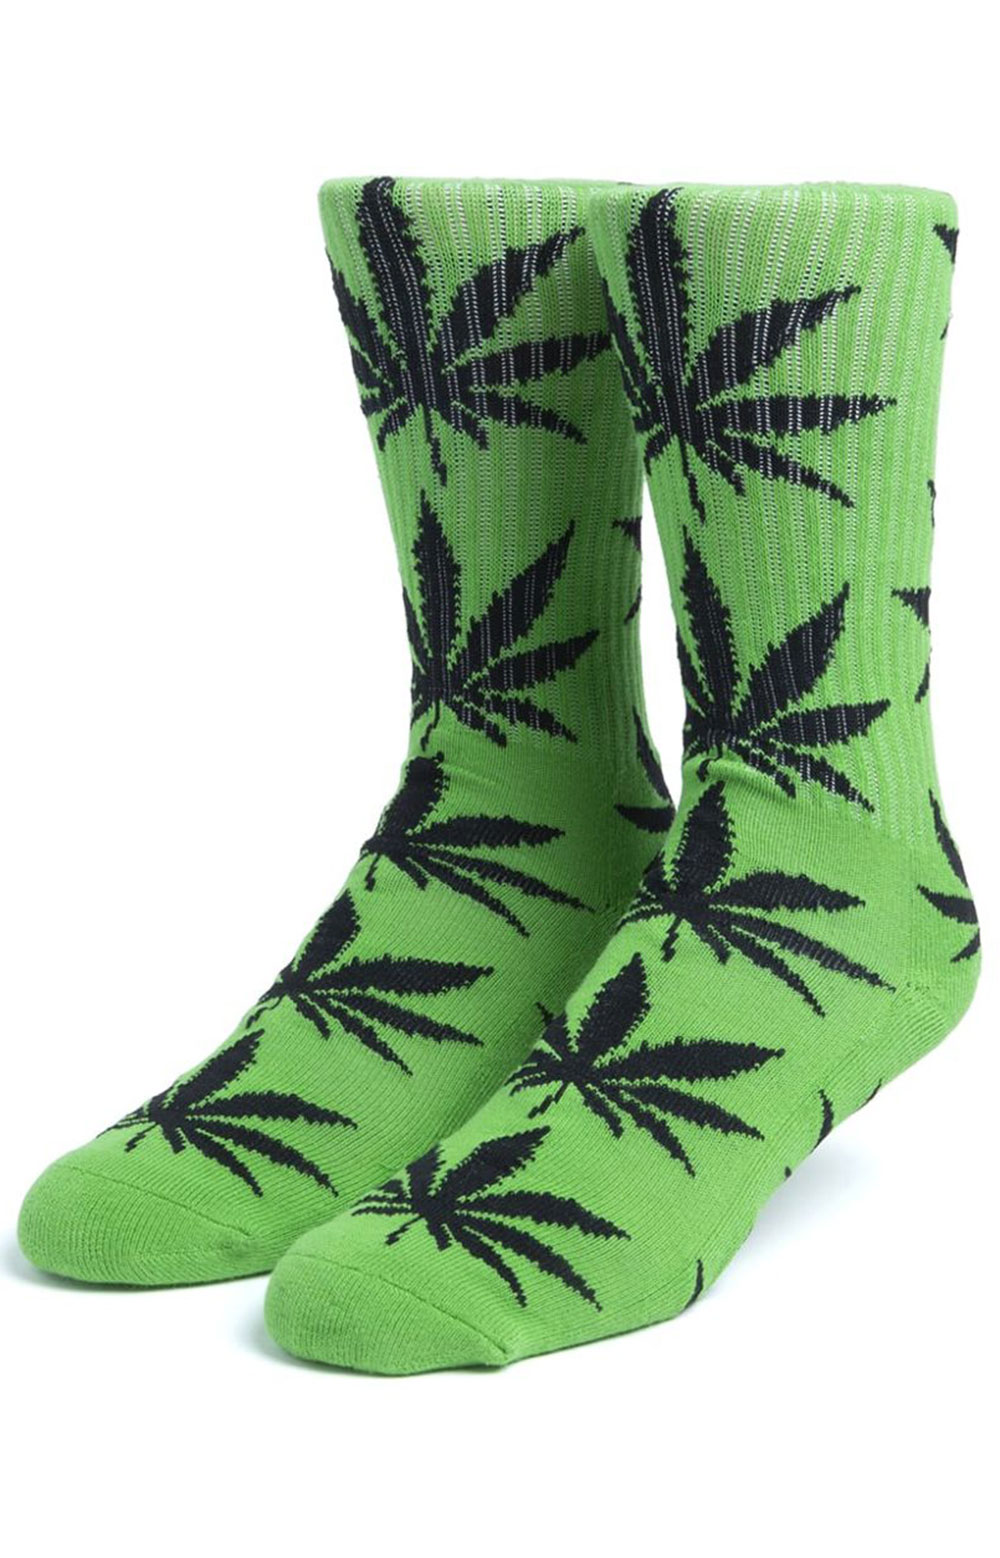 Essentials Plantlife Sock 3 Pack - Black/White/Huf Green  3